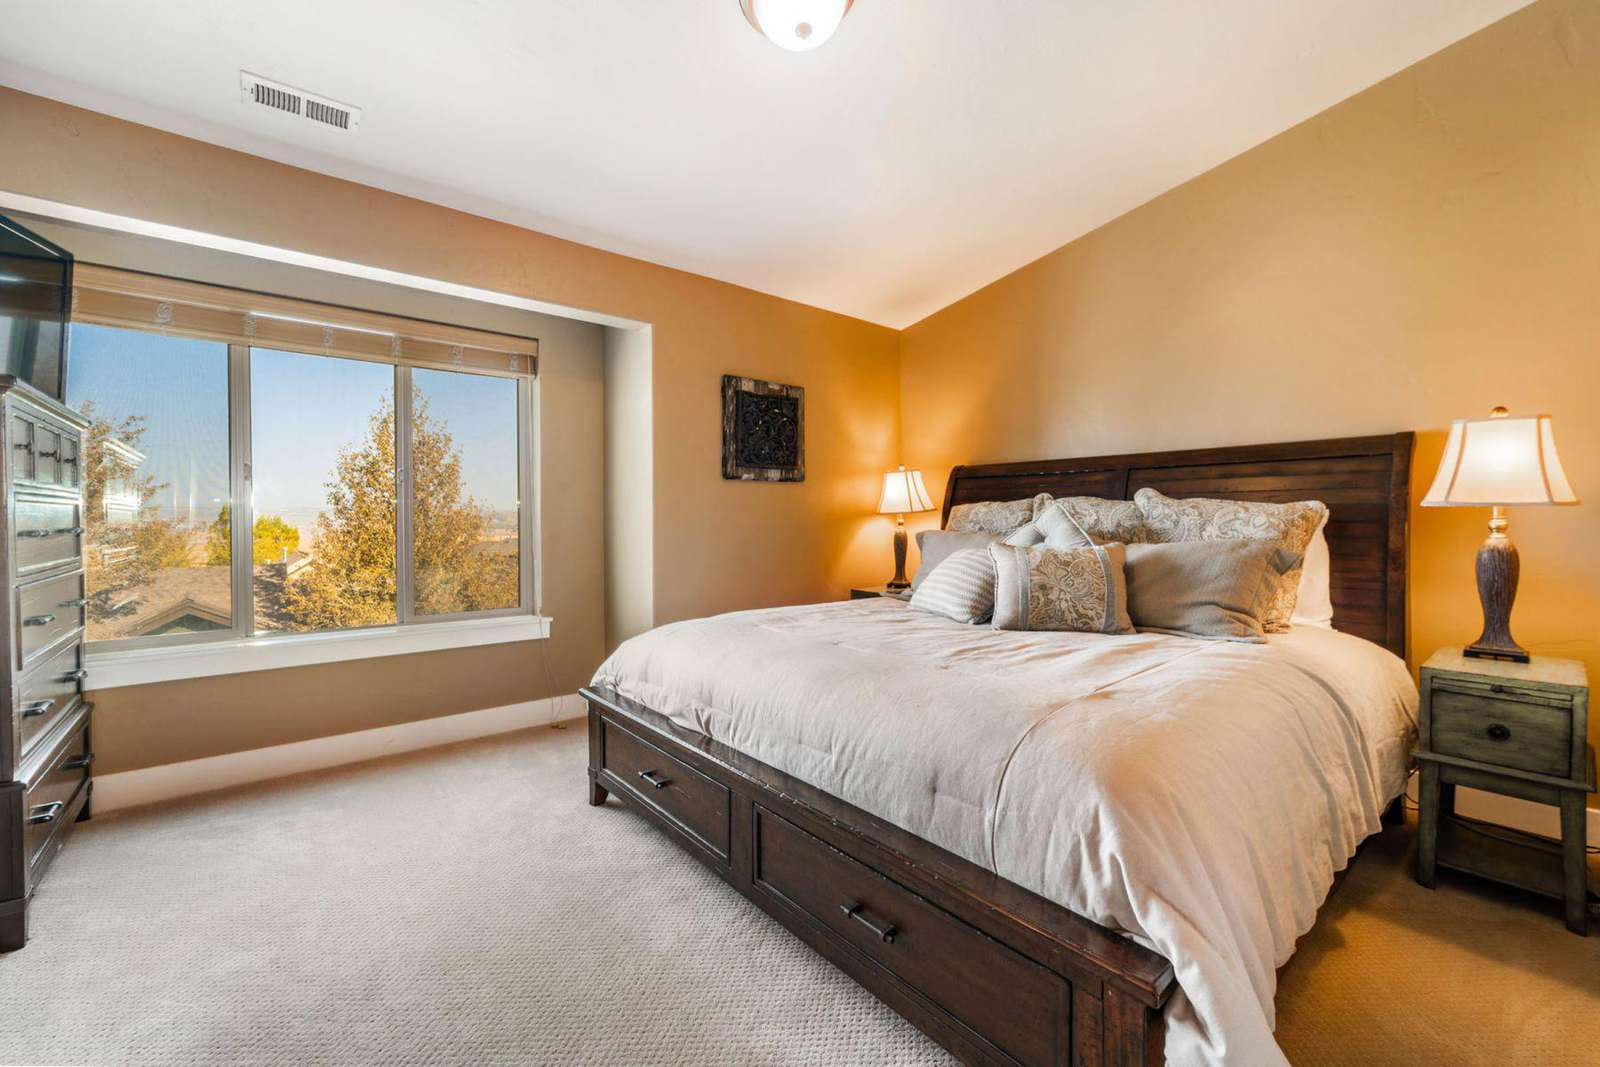 Guest bedroom with dresser and TV